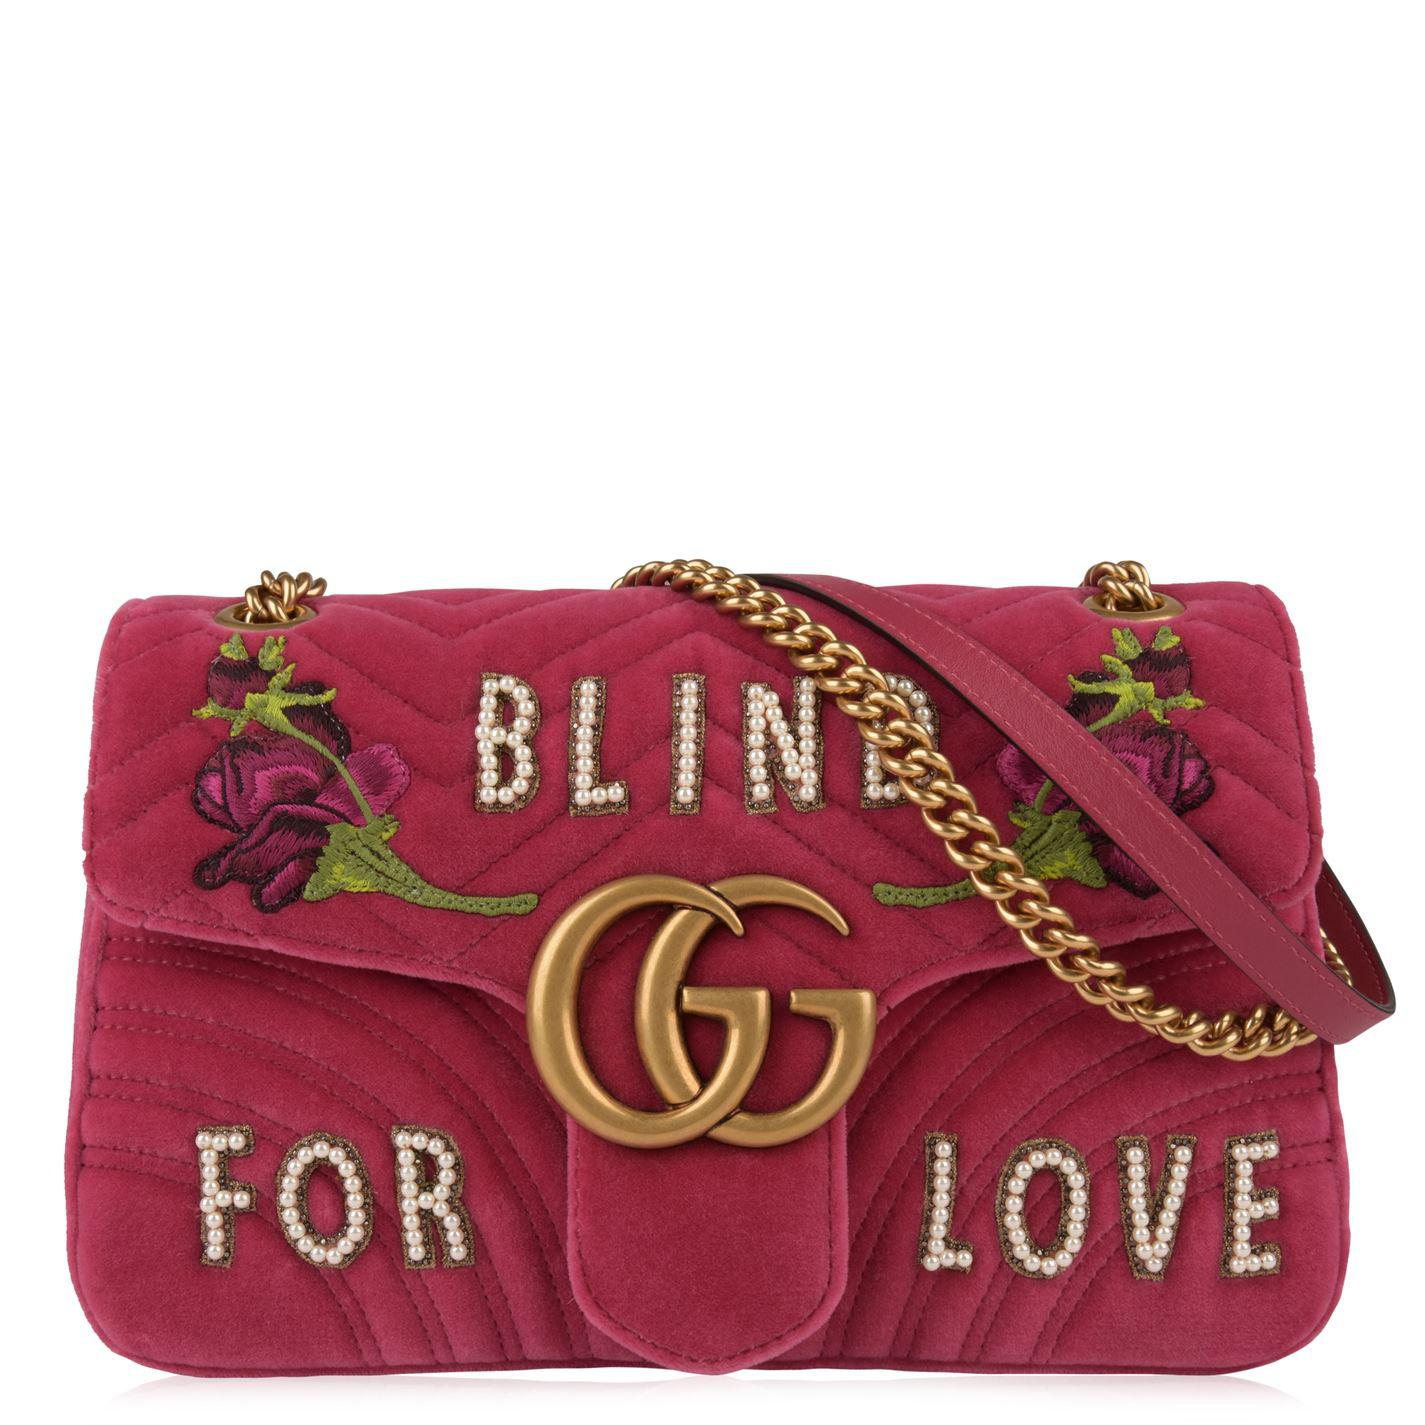 15f2a4a4e42e Gucci Blind For Love Marmont Shoulder Bag in Pink - Lyst